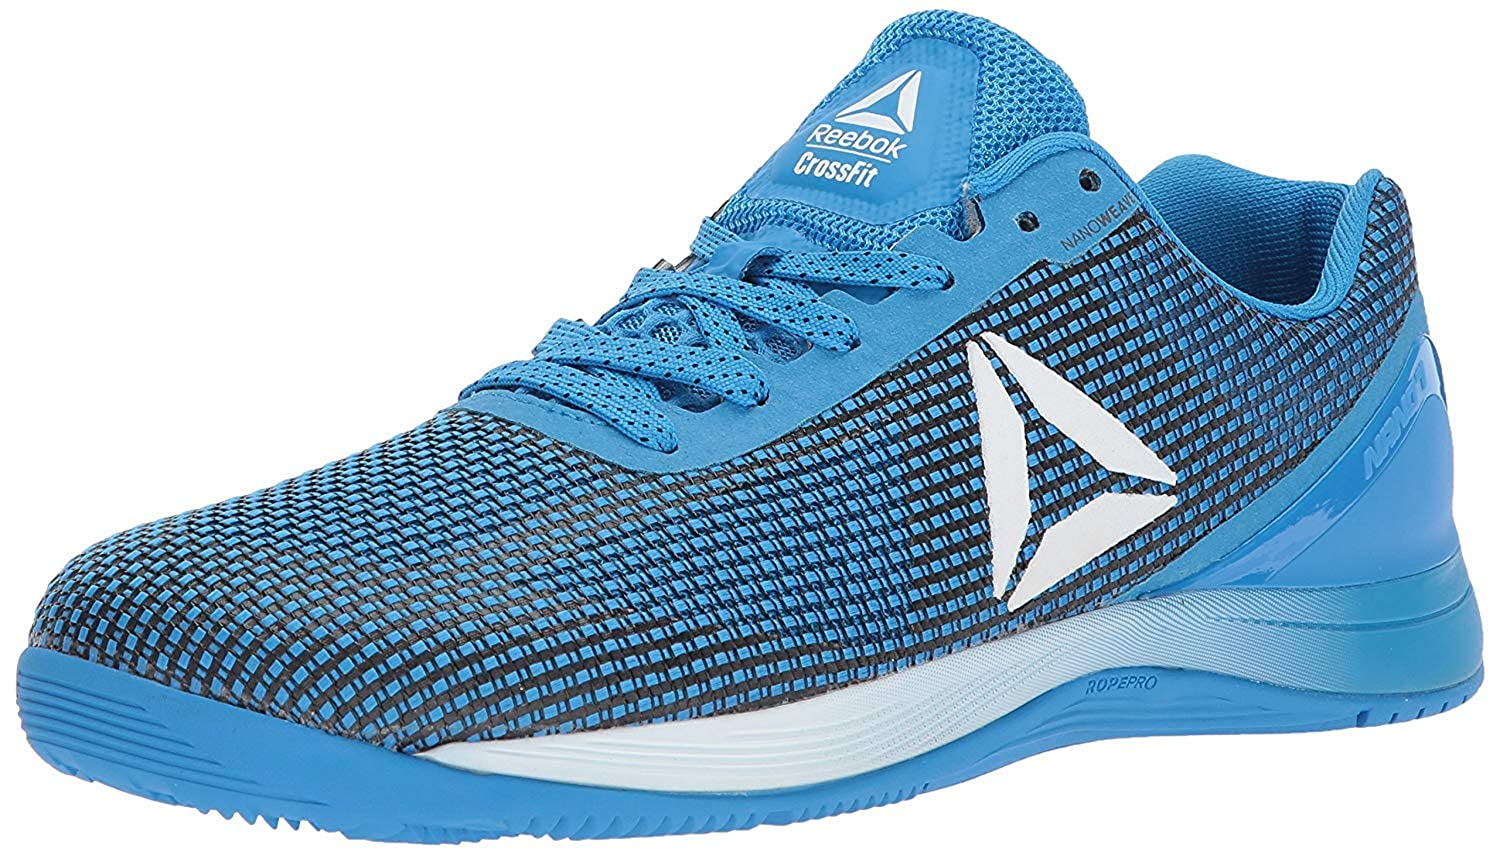 Buy Reebok Men's Crossfit Nano 7.0 Cross-Trainer Shoe at Amazon.in